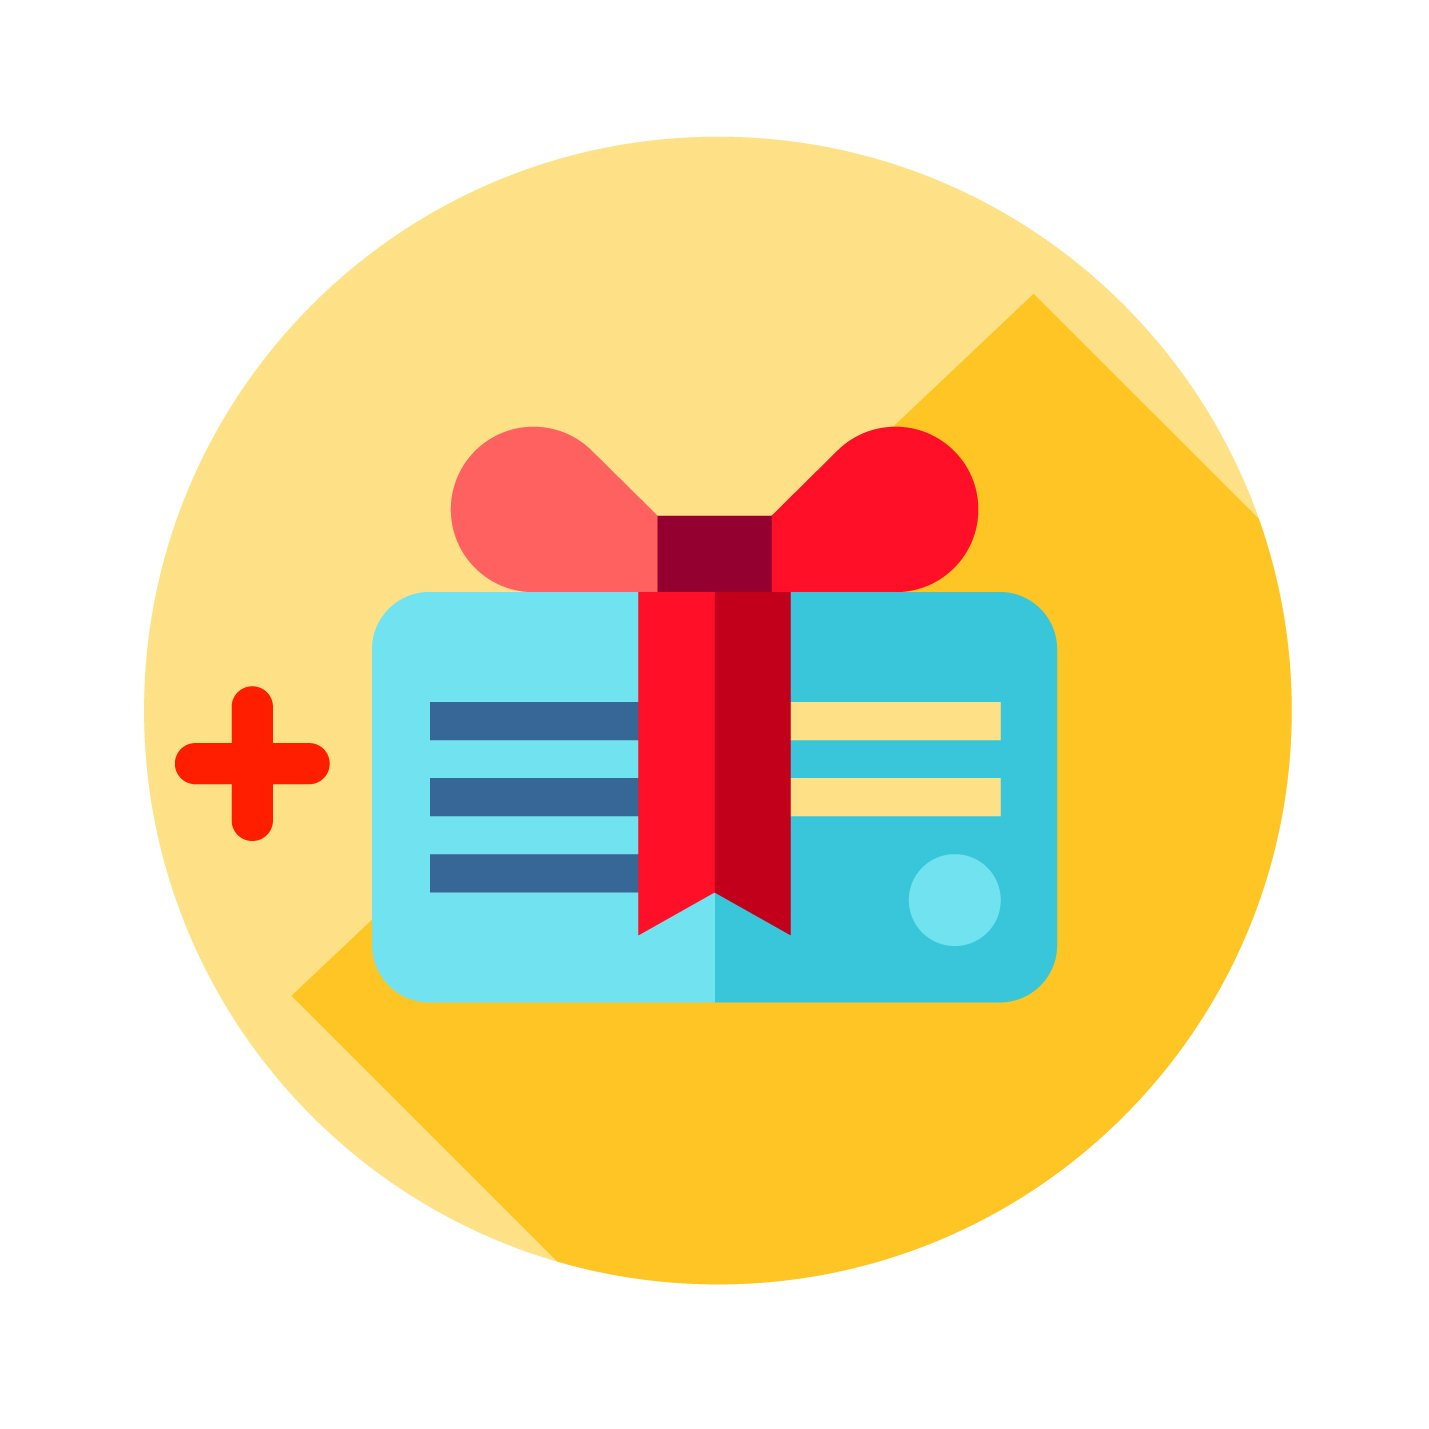 Woocommerce gift card magenest e commerce expert get ready to create gift card with a full set of toolkits xflitez Image collections